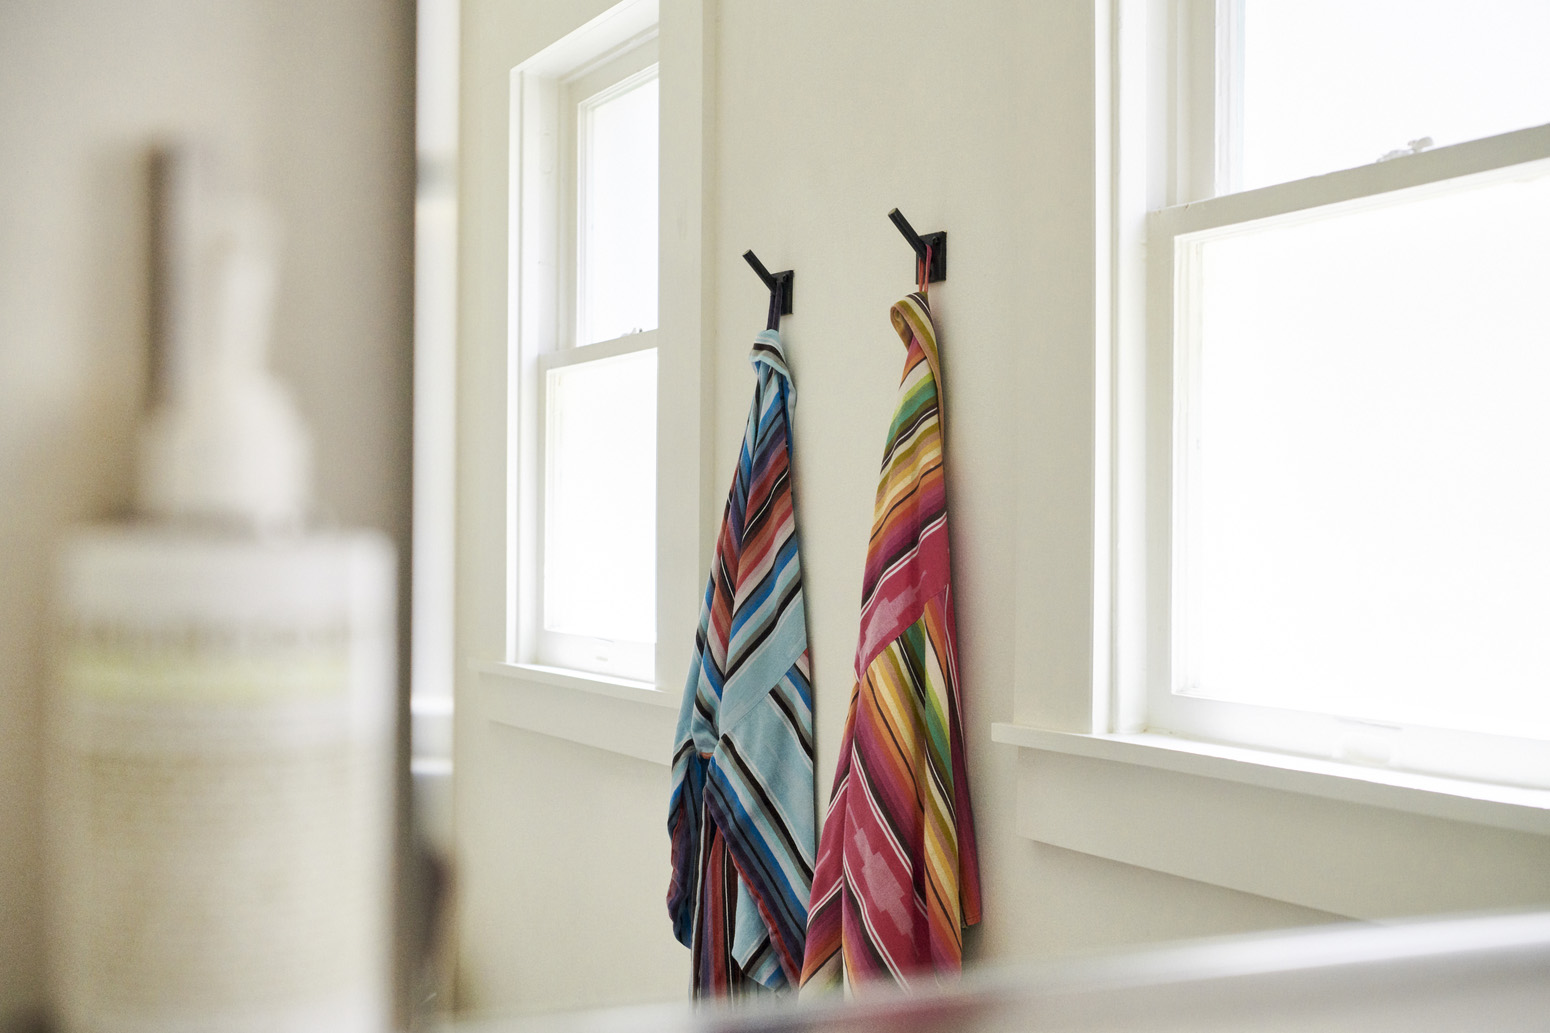 A set of patterned bathrobes hanging on a wall between two bright windows